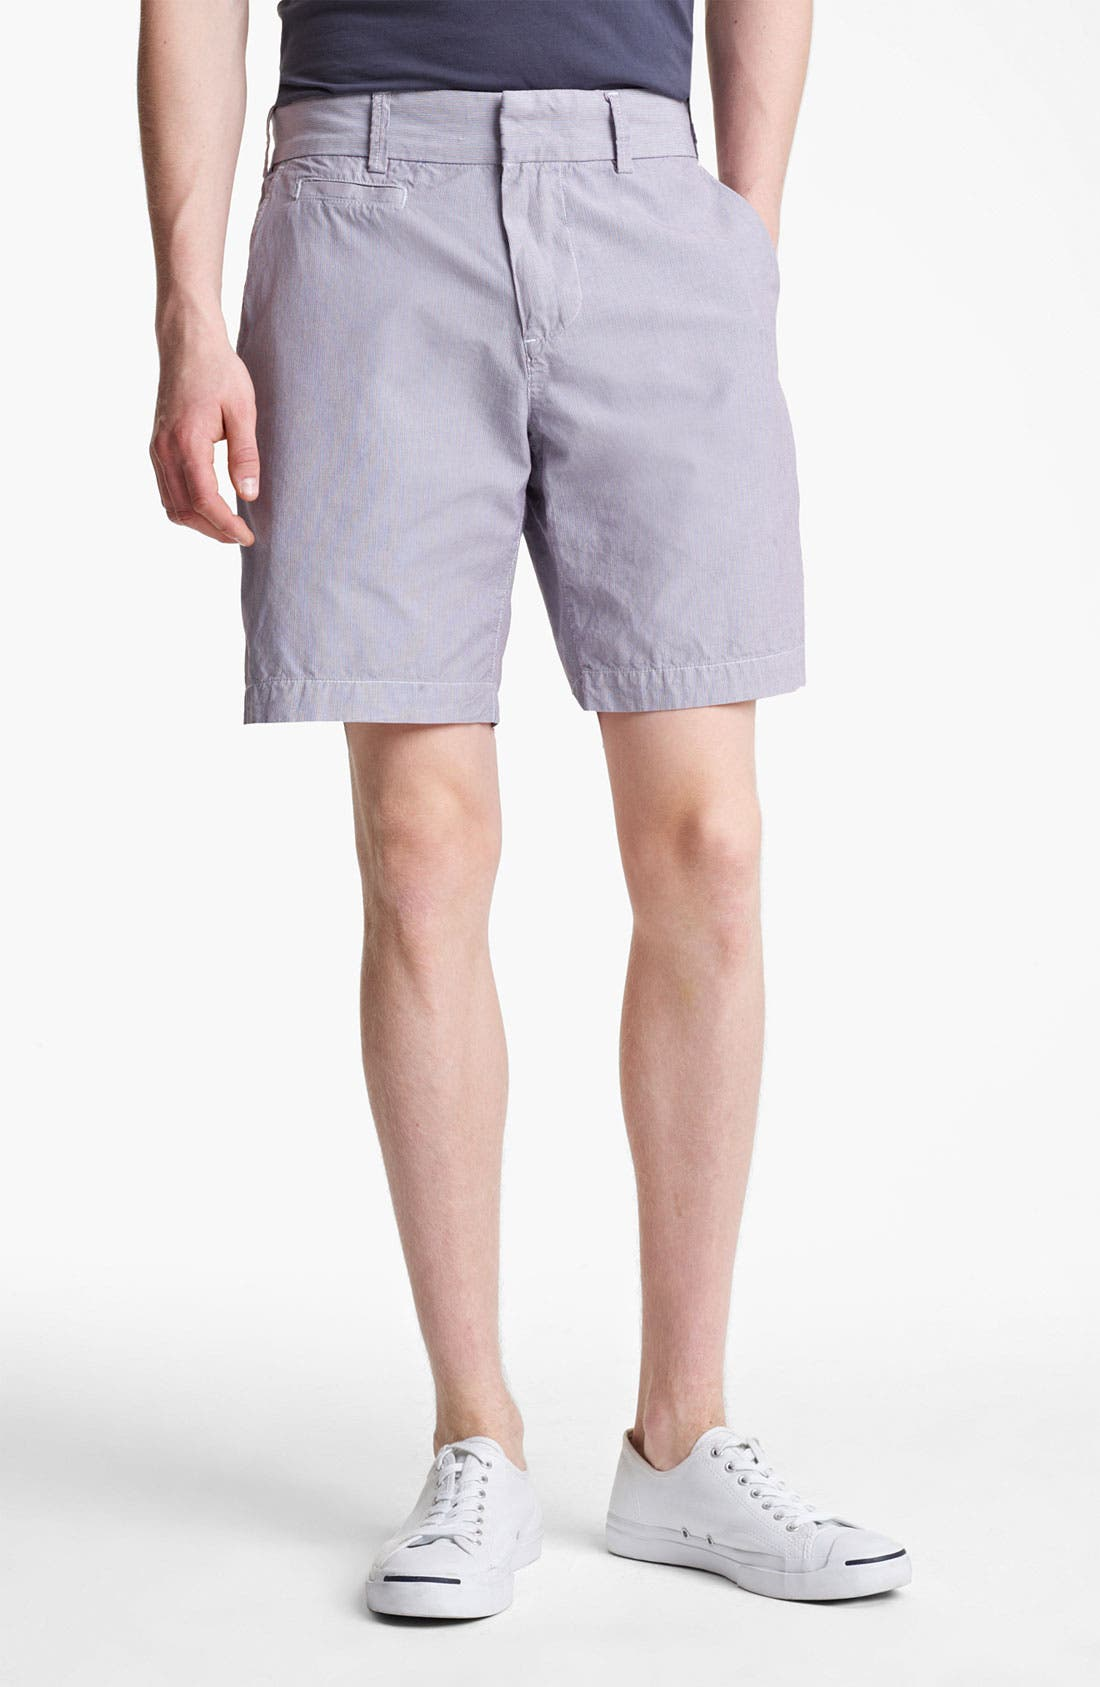 Alternate Image 1 Selected - Save Khaki Microstripe Bermuda Shorts